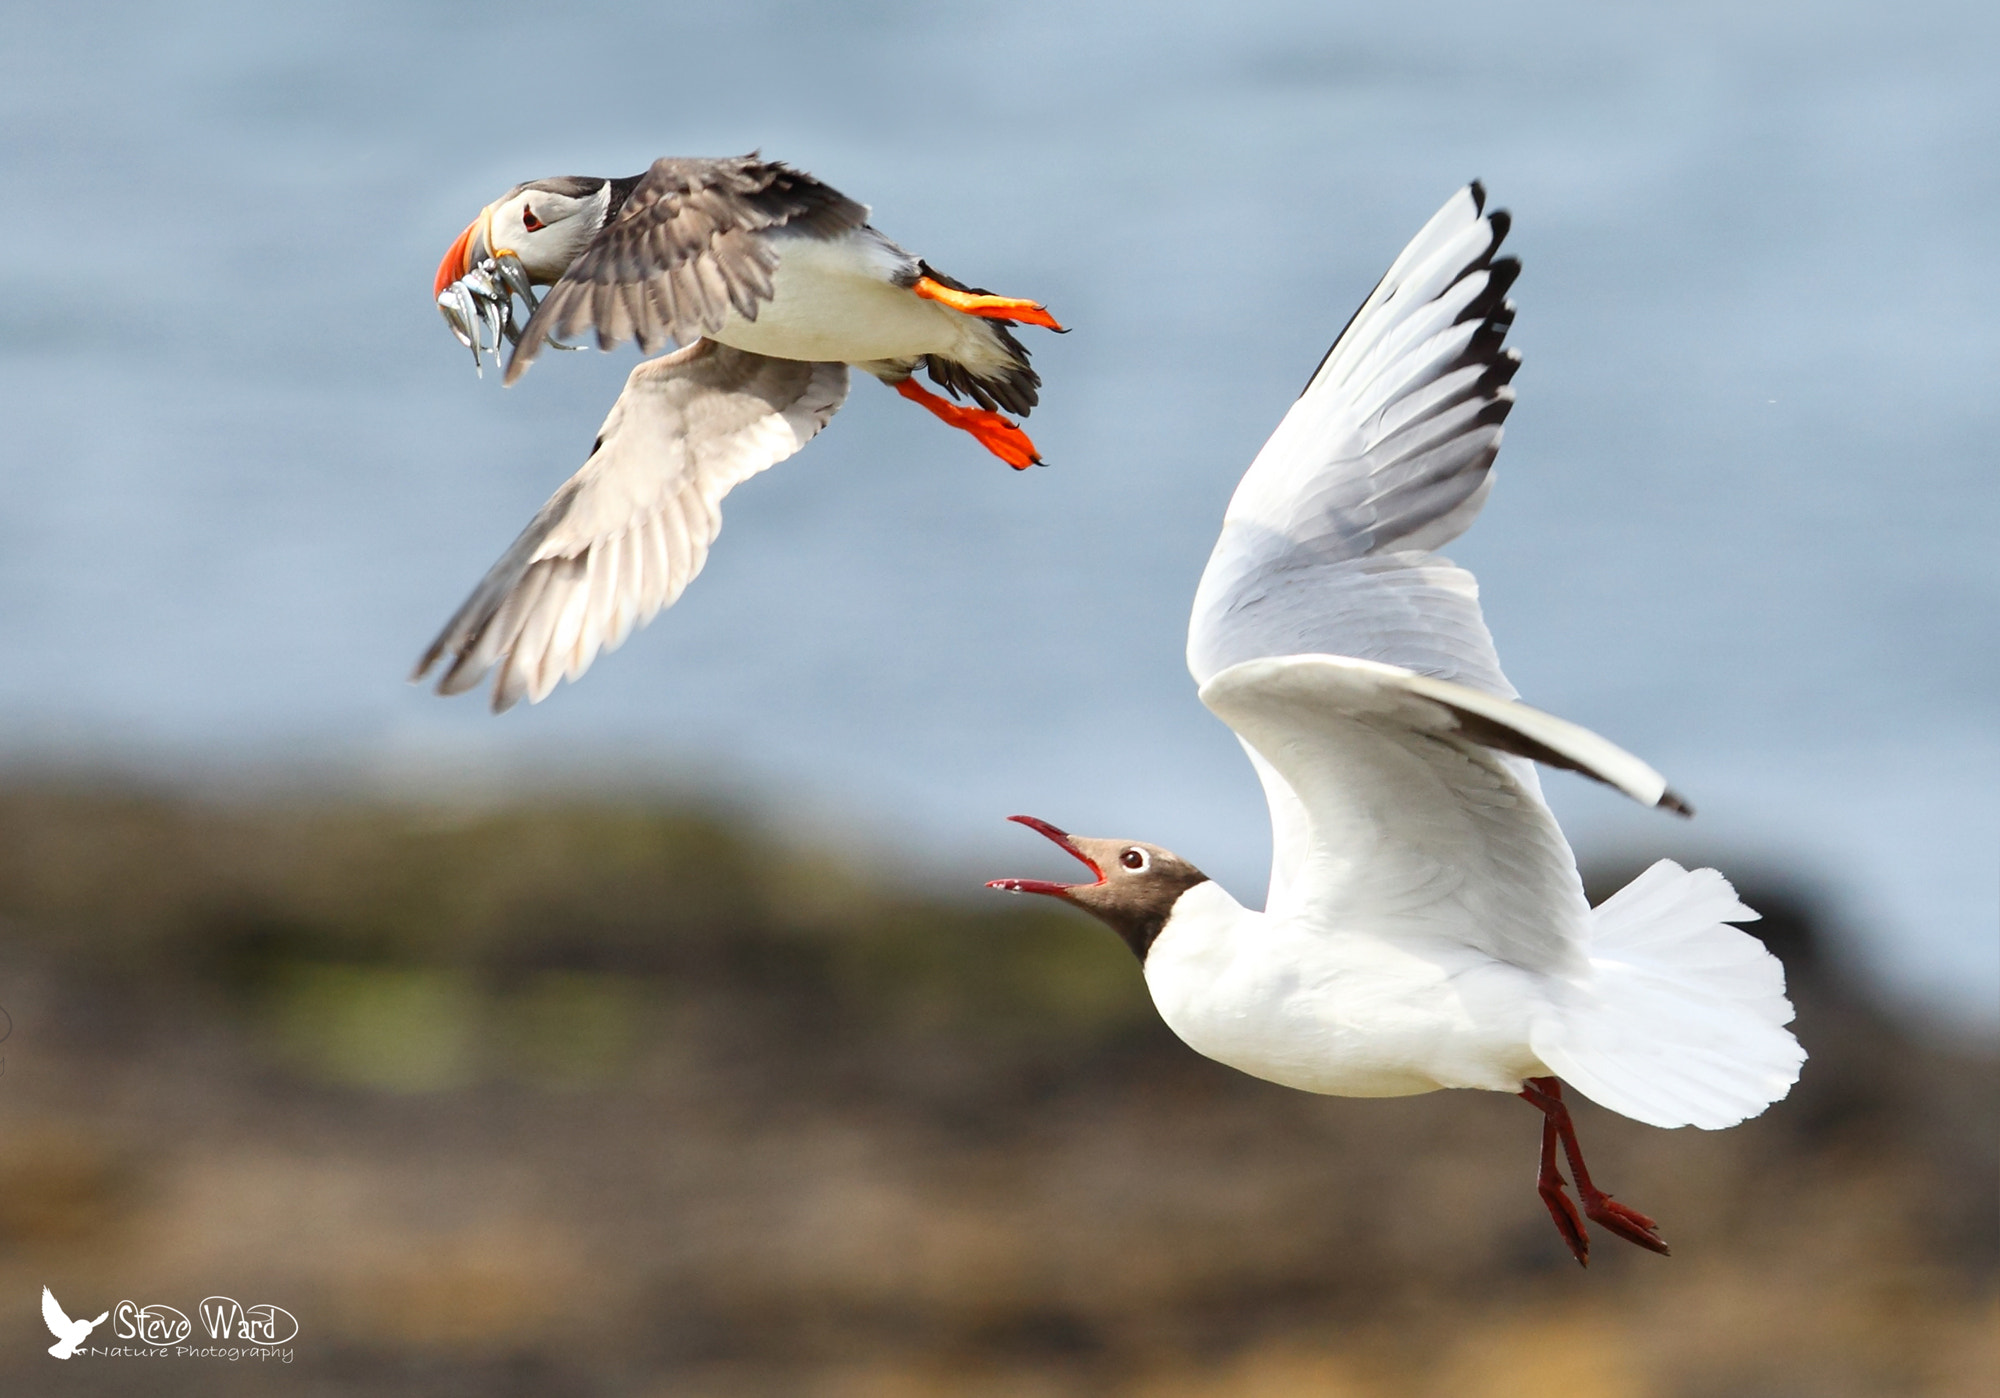 Photograph Puffin hi-jacked by Steven Ward  on 500px